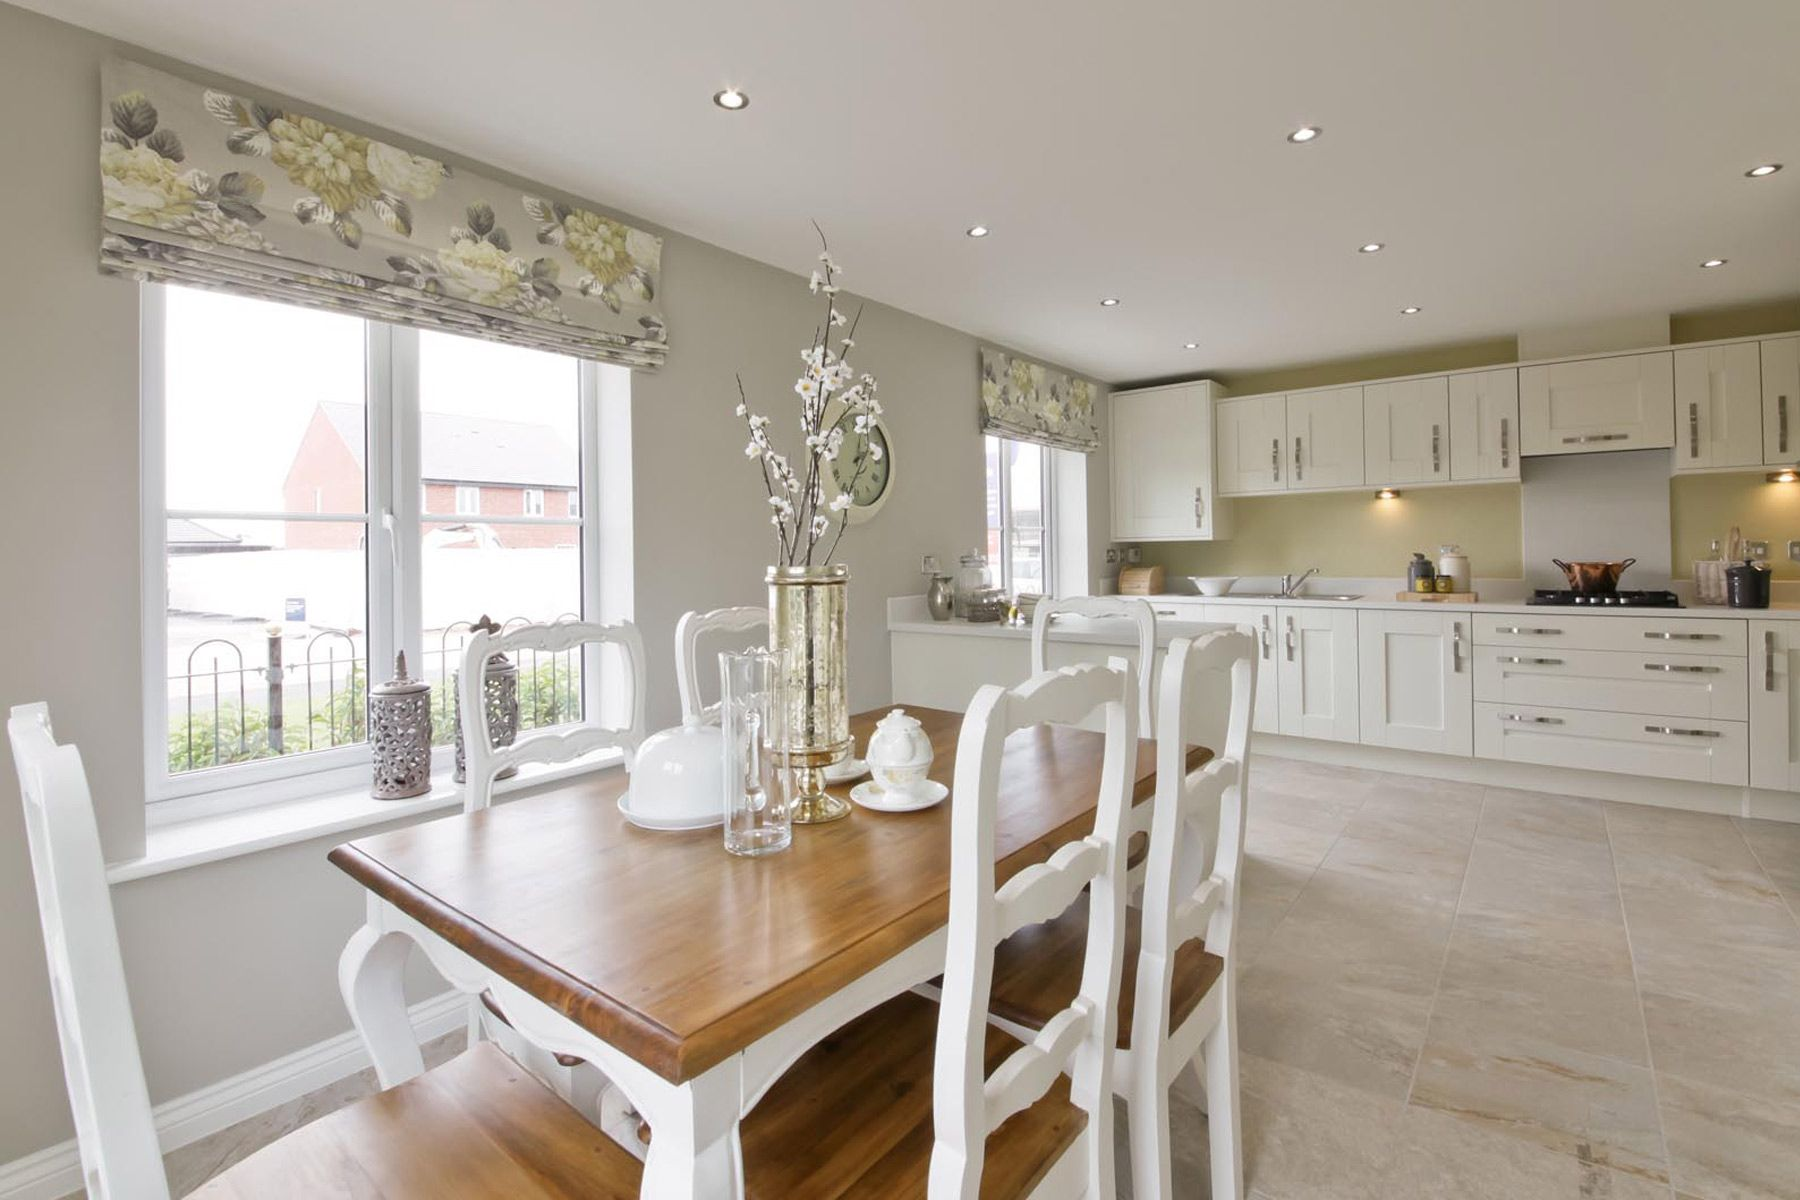 TW Exeter - Mayfield Gardens - Trsudale example kitchen 4